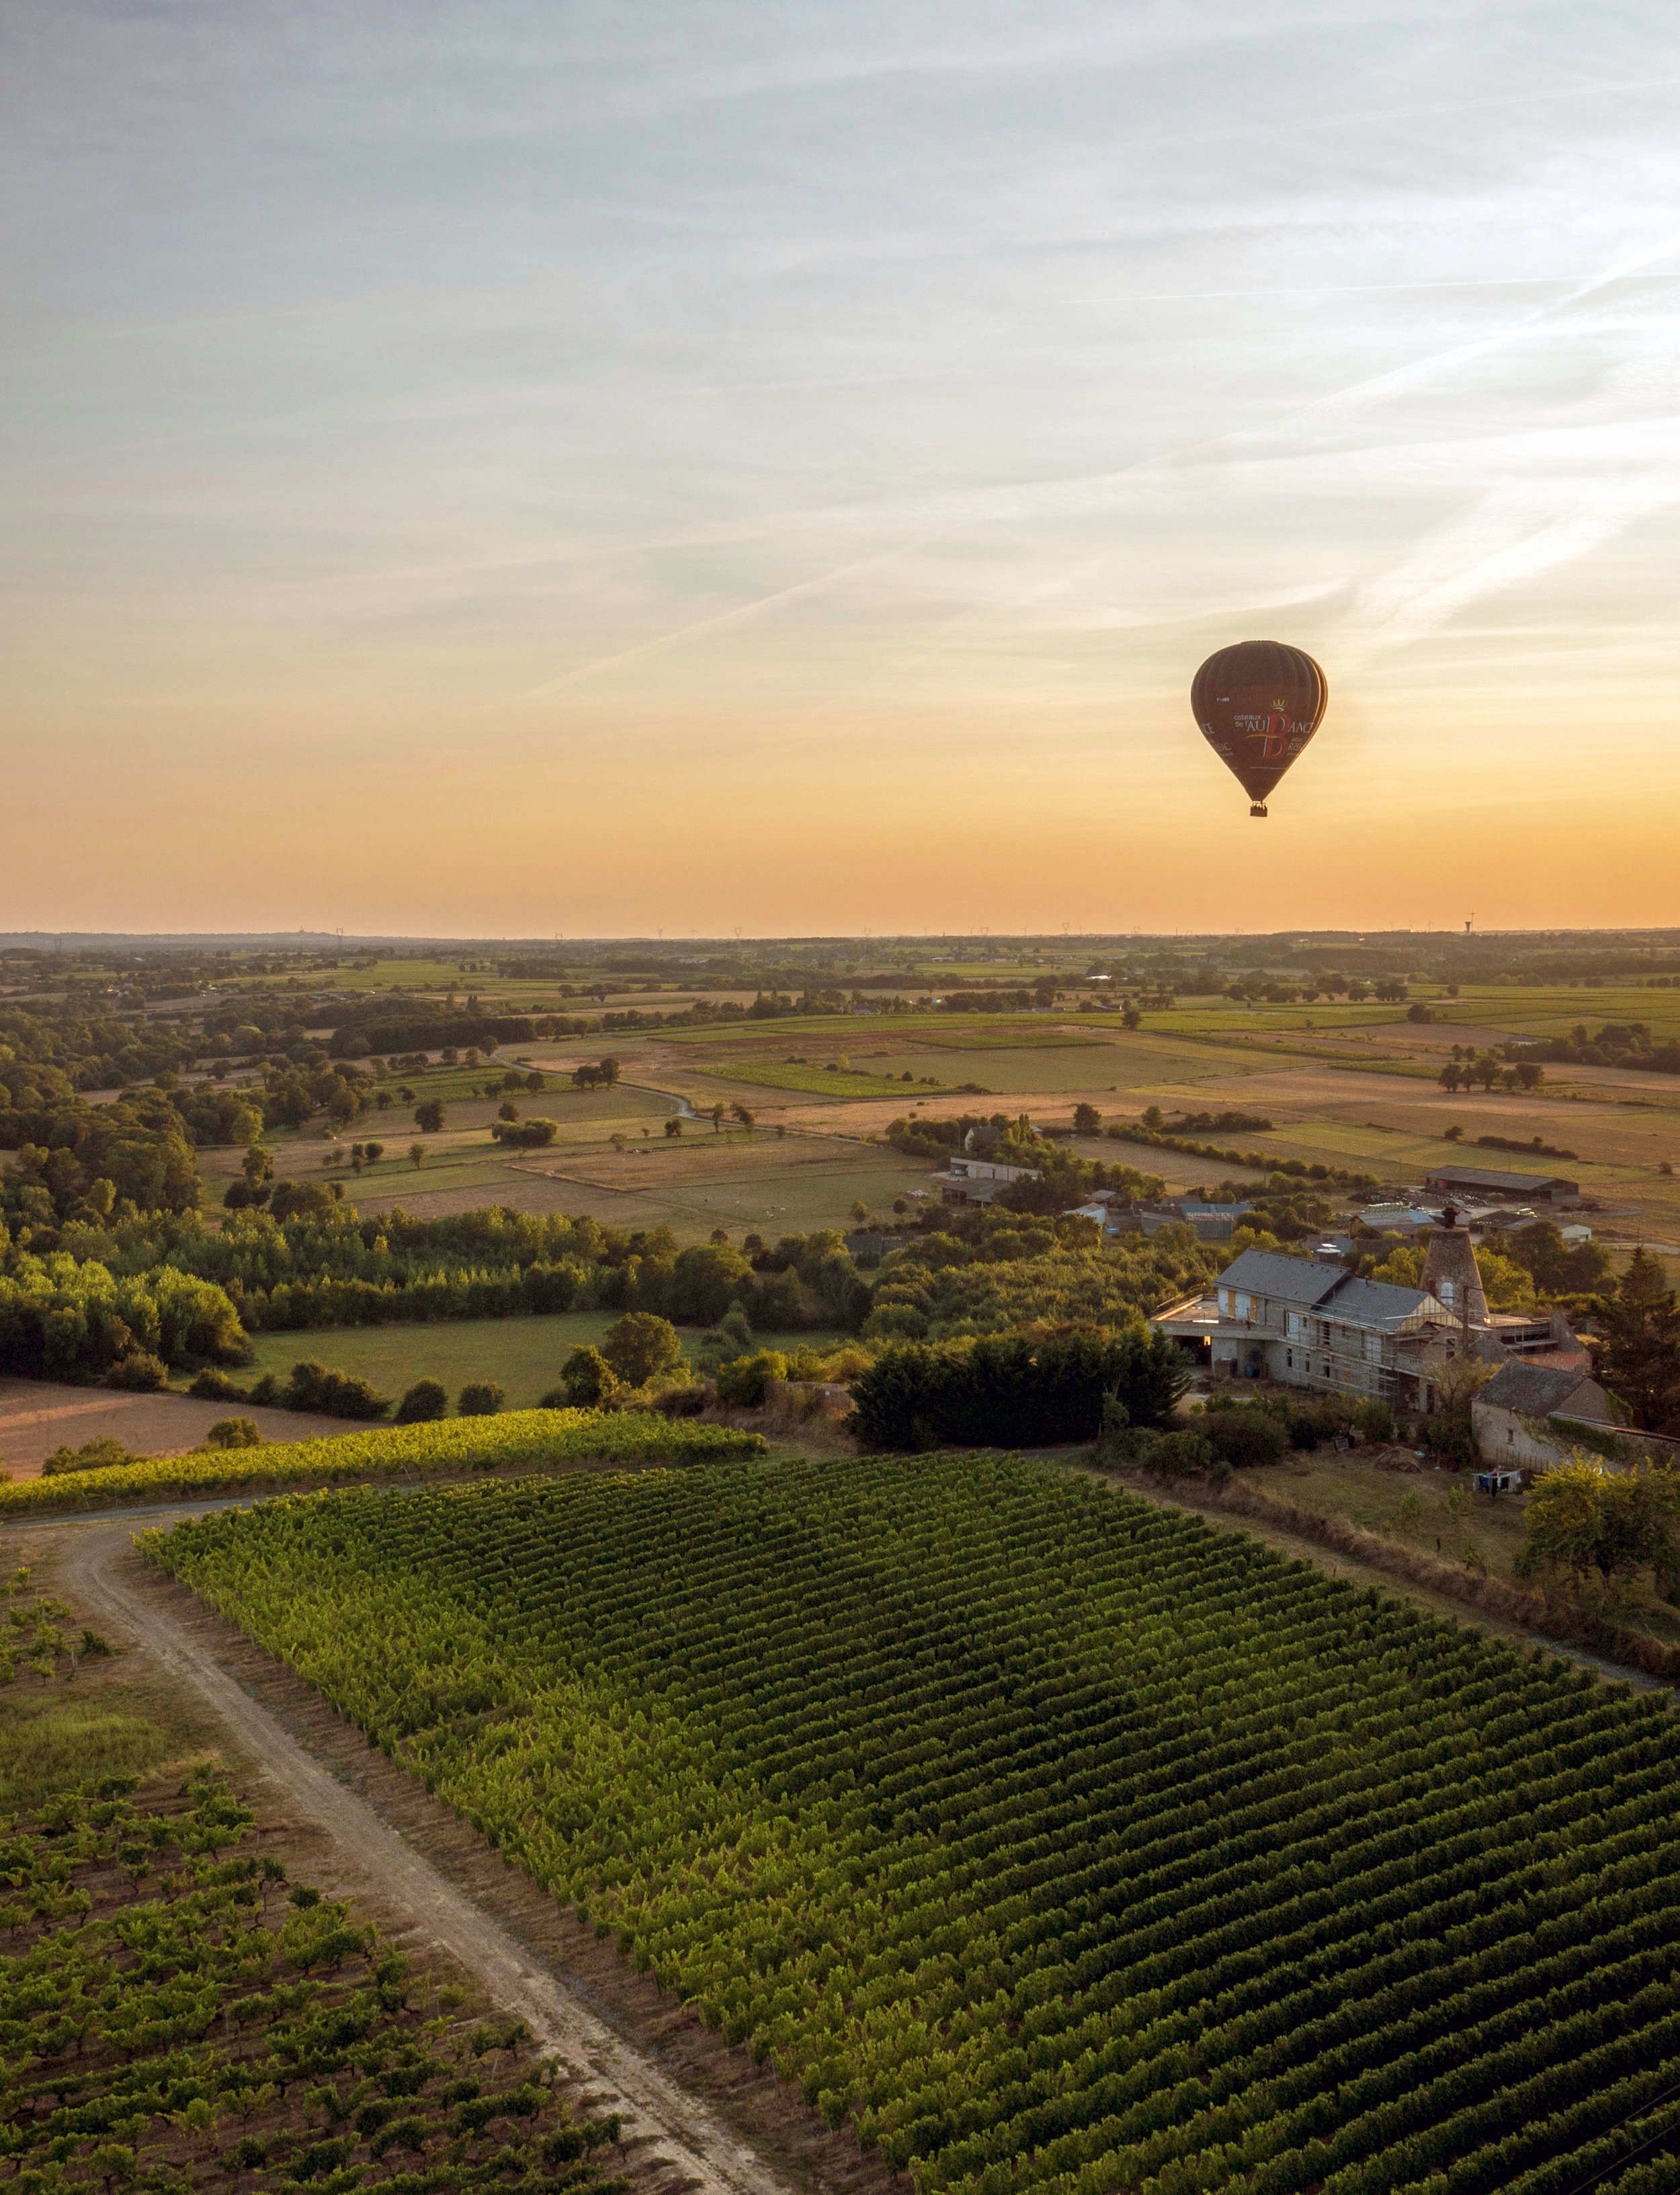 Loire Valley France, Hot Air Balloon Ride